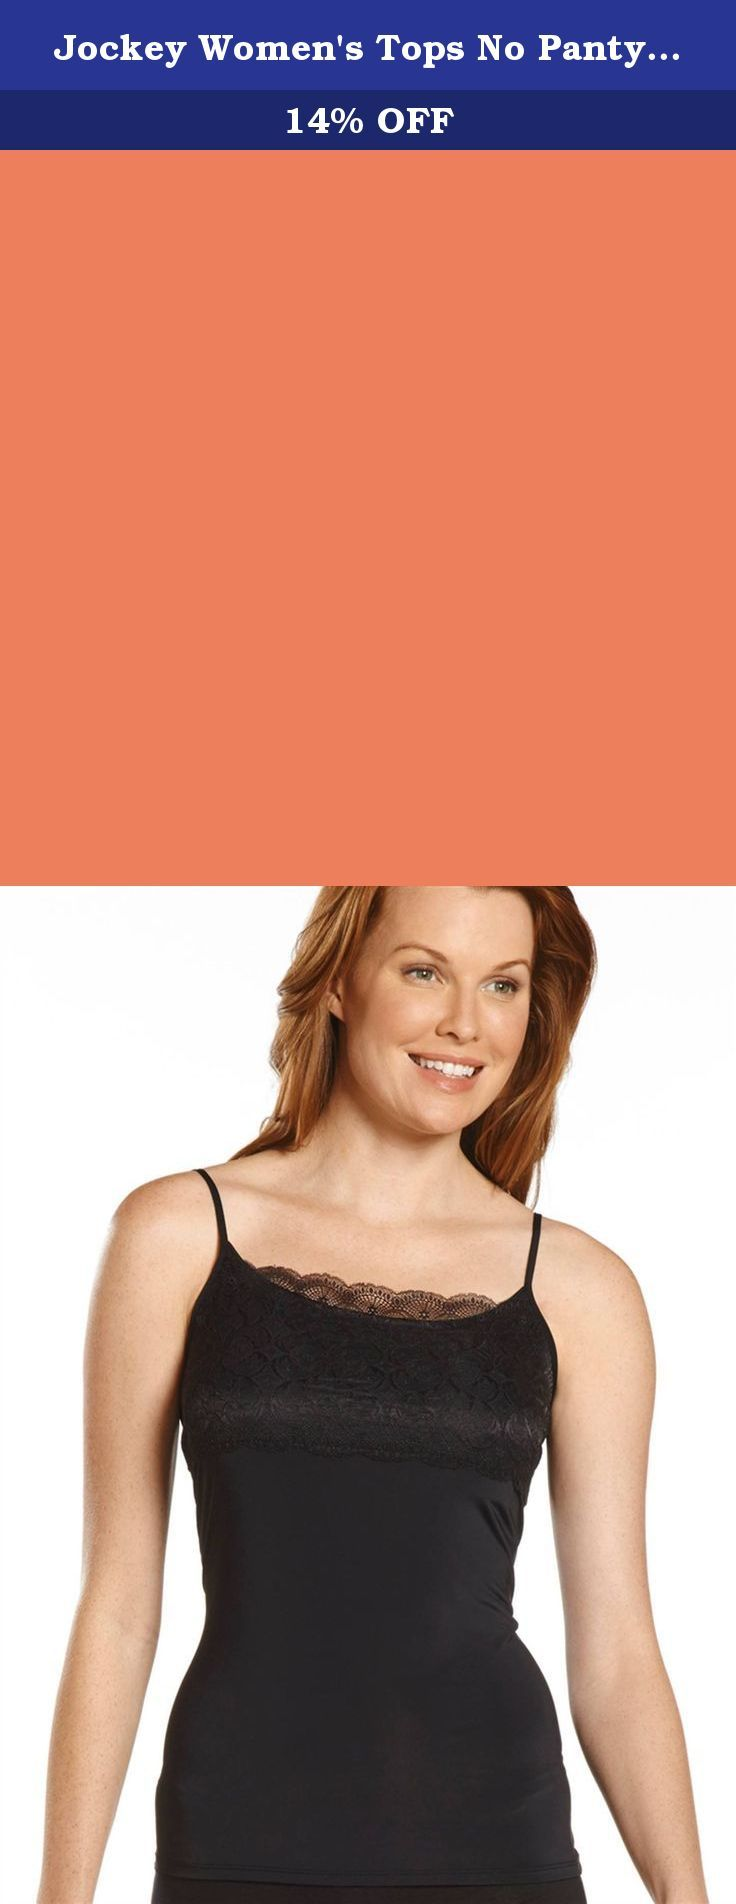 Jockey Women's Tops No Panty Line Promise Tactel Nylon Lace Camisole, jewel red, L. No Panty Line Promise® seams and a feminine lace detail along the bust make this cami a wardrobe must-have. The silky smooth fabric blend with a touch of stretch glides gently underneath your favorite tops and sweaters. Cami featured adjustable straps for a fit that stays put all day.